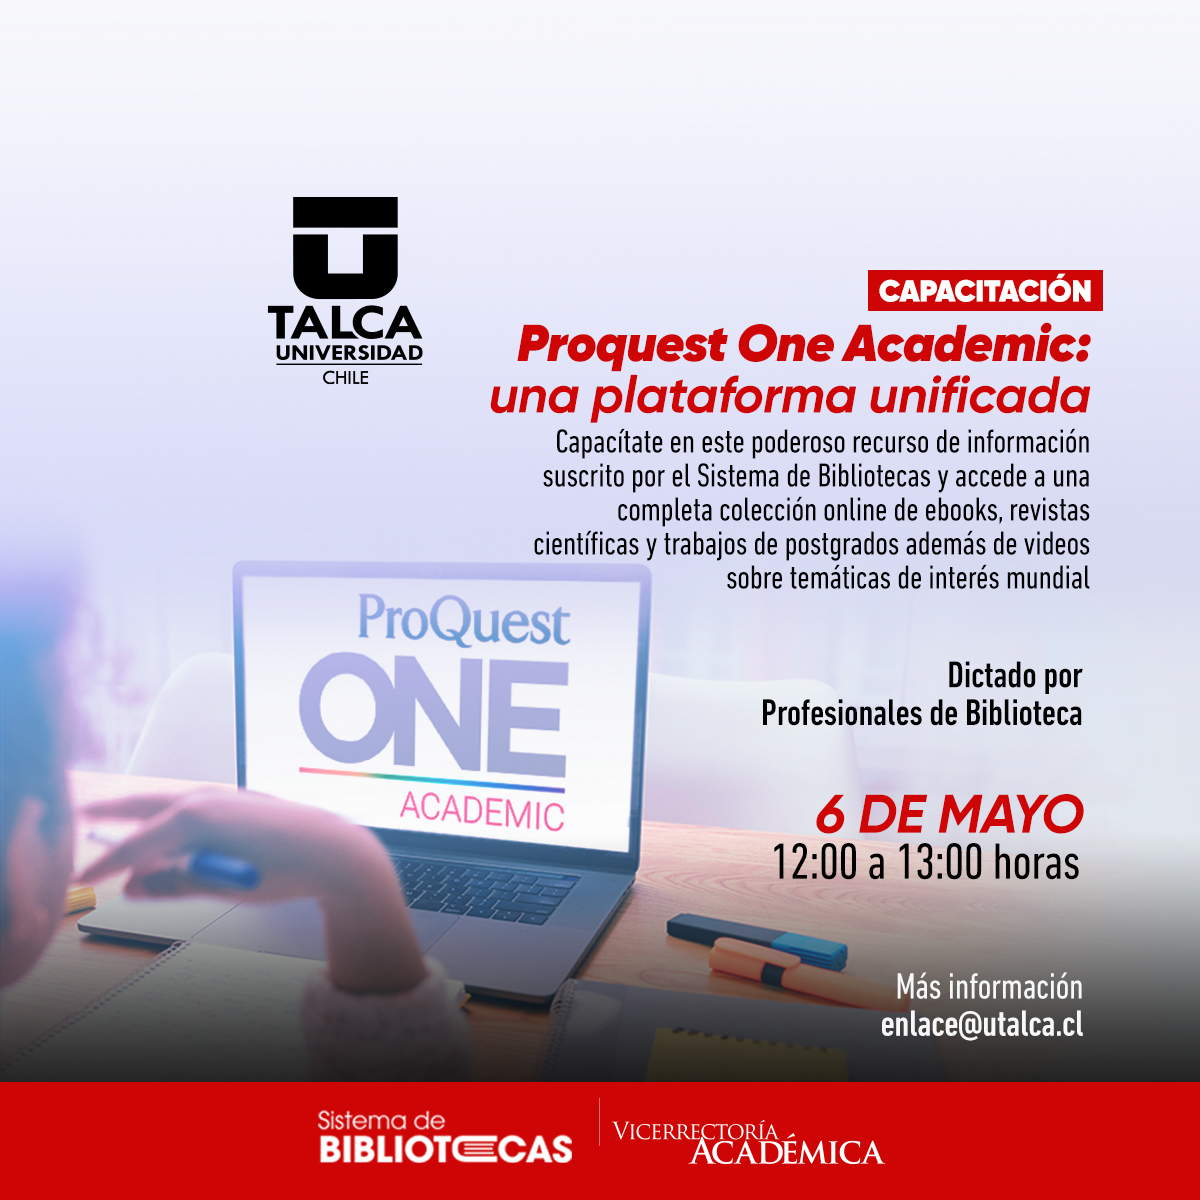 Capacitación: Proquest One Academic: Una Plataforma Unificada